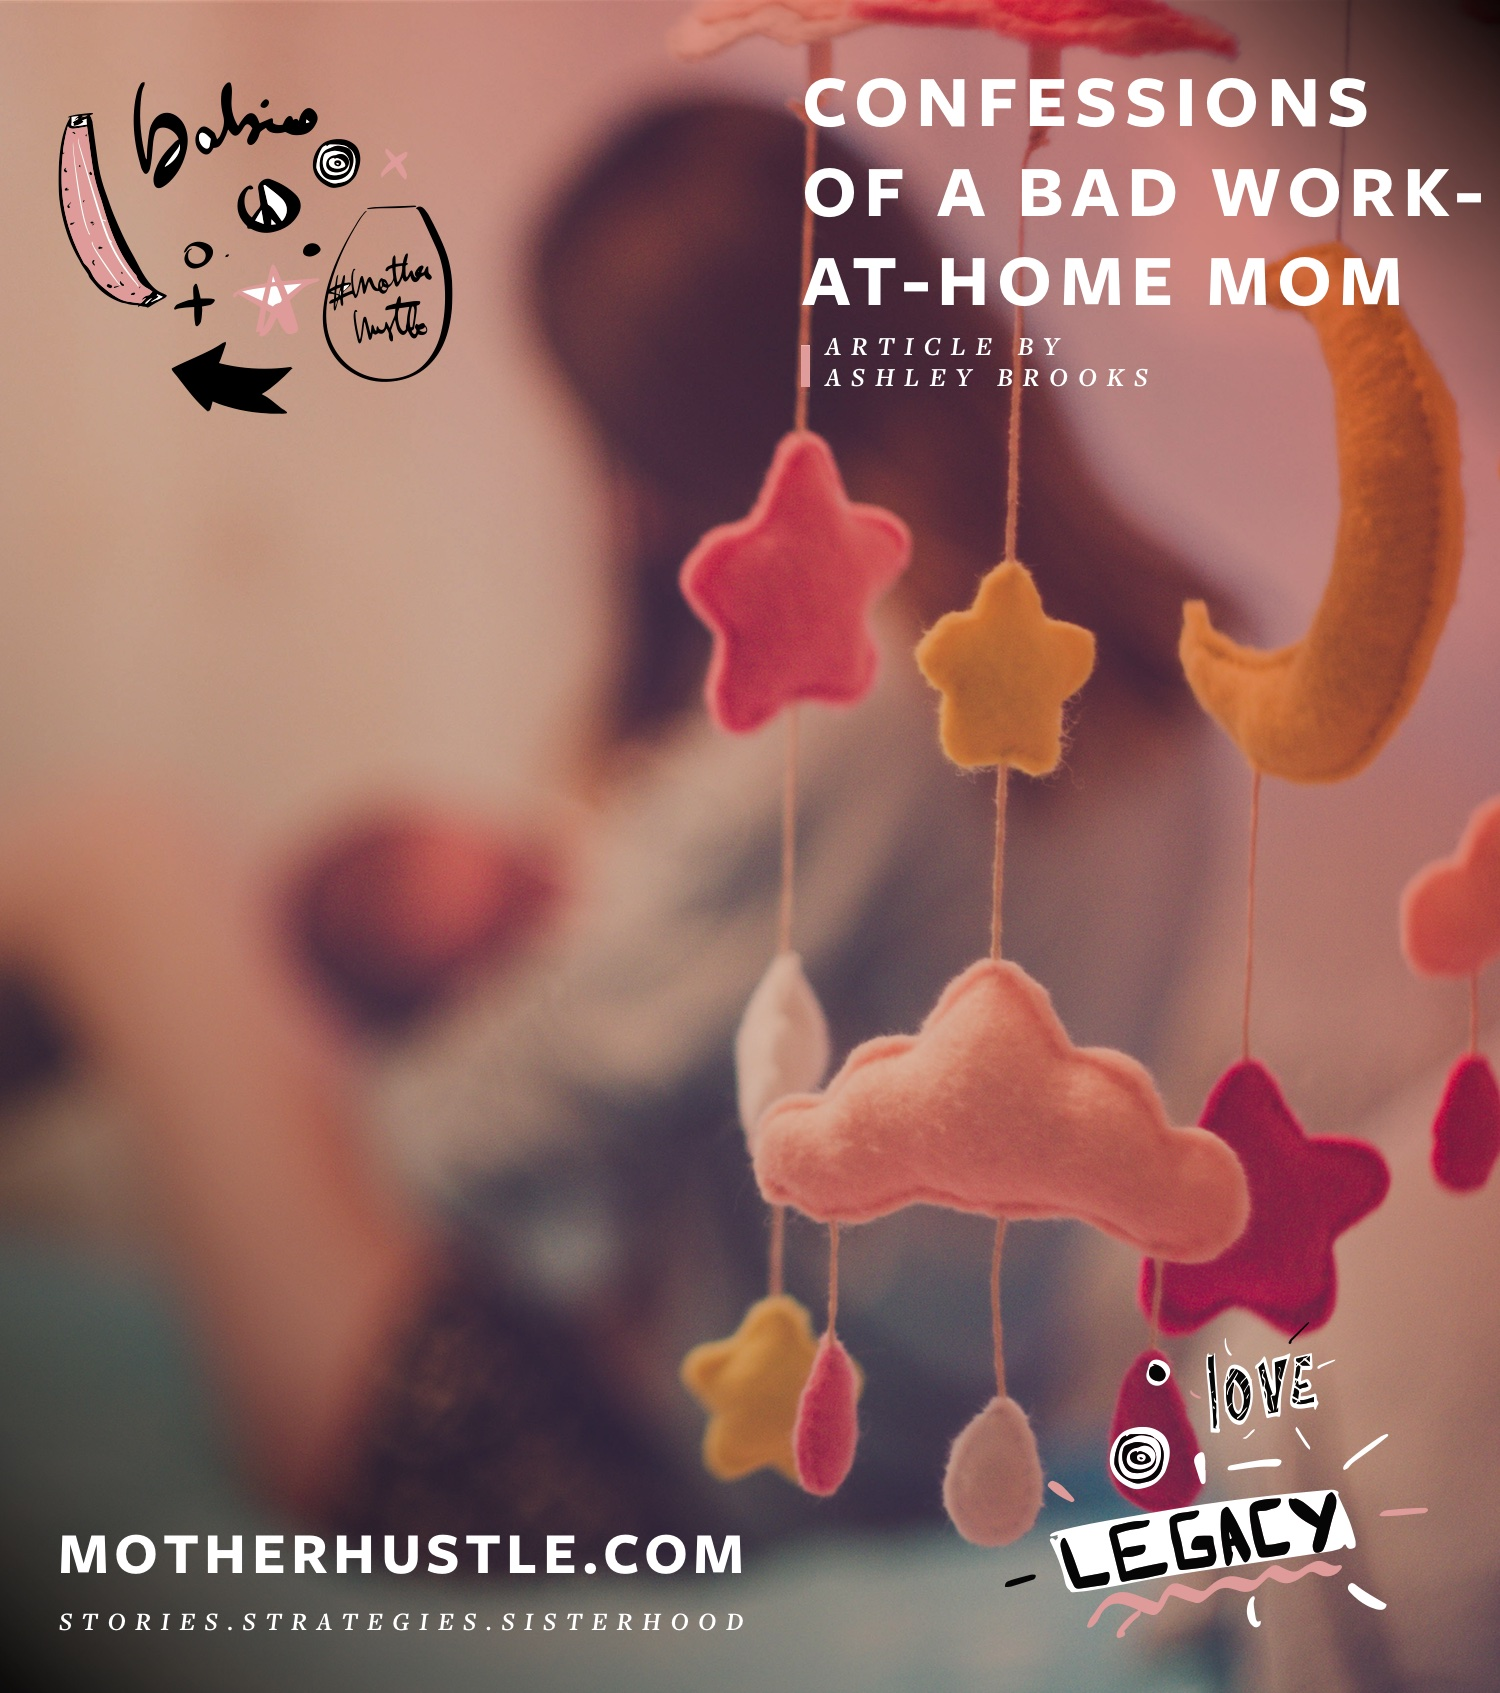 Confessions of a Bad Work-At-Home Mom - Ashley Brooks MotherHustle